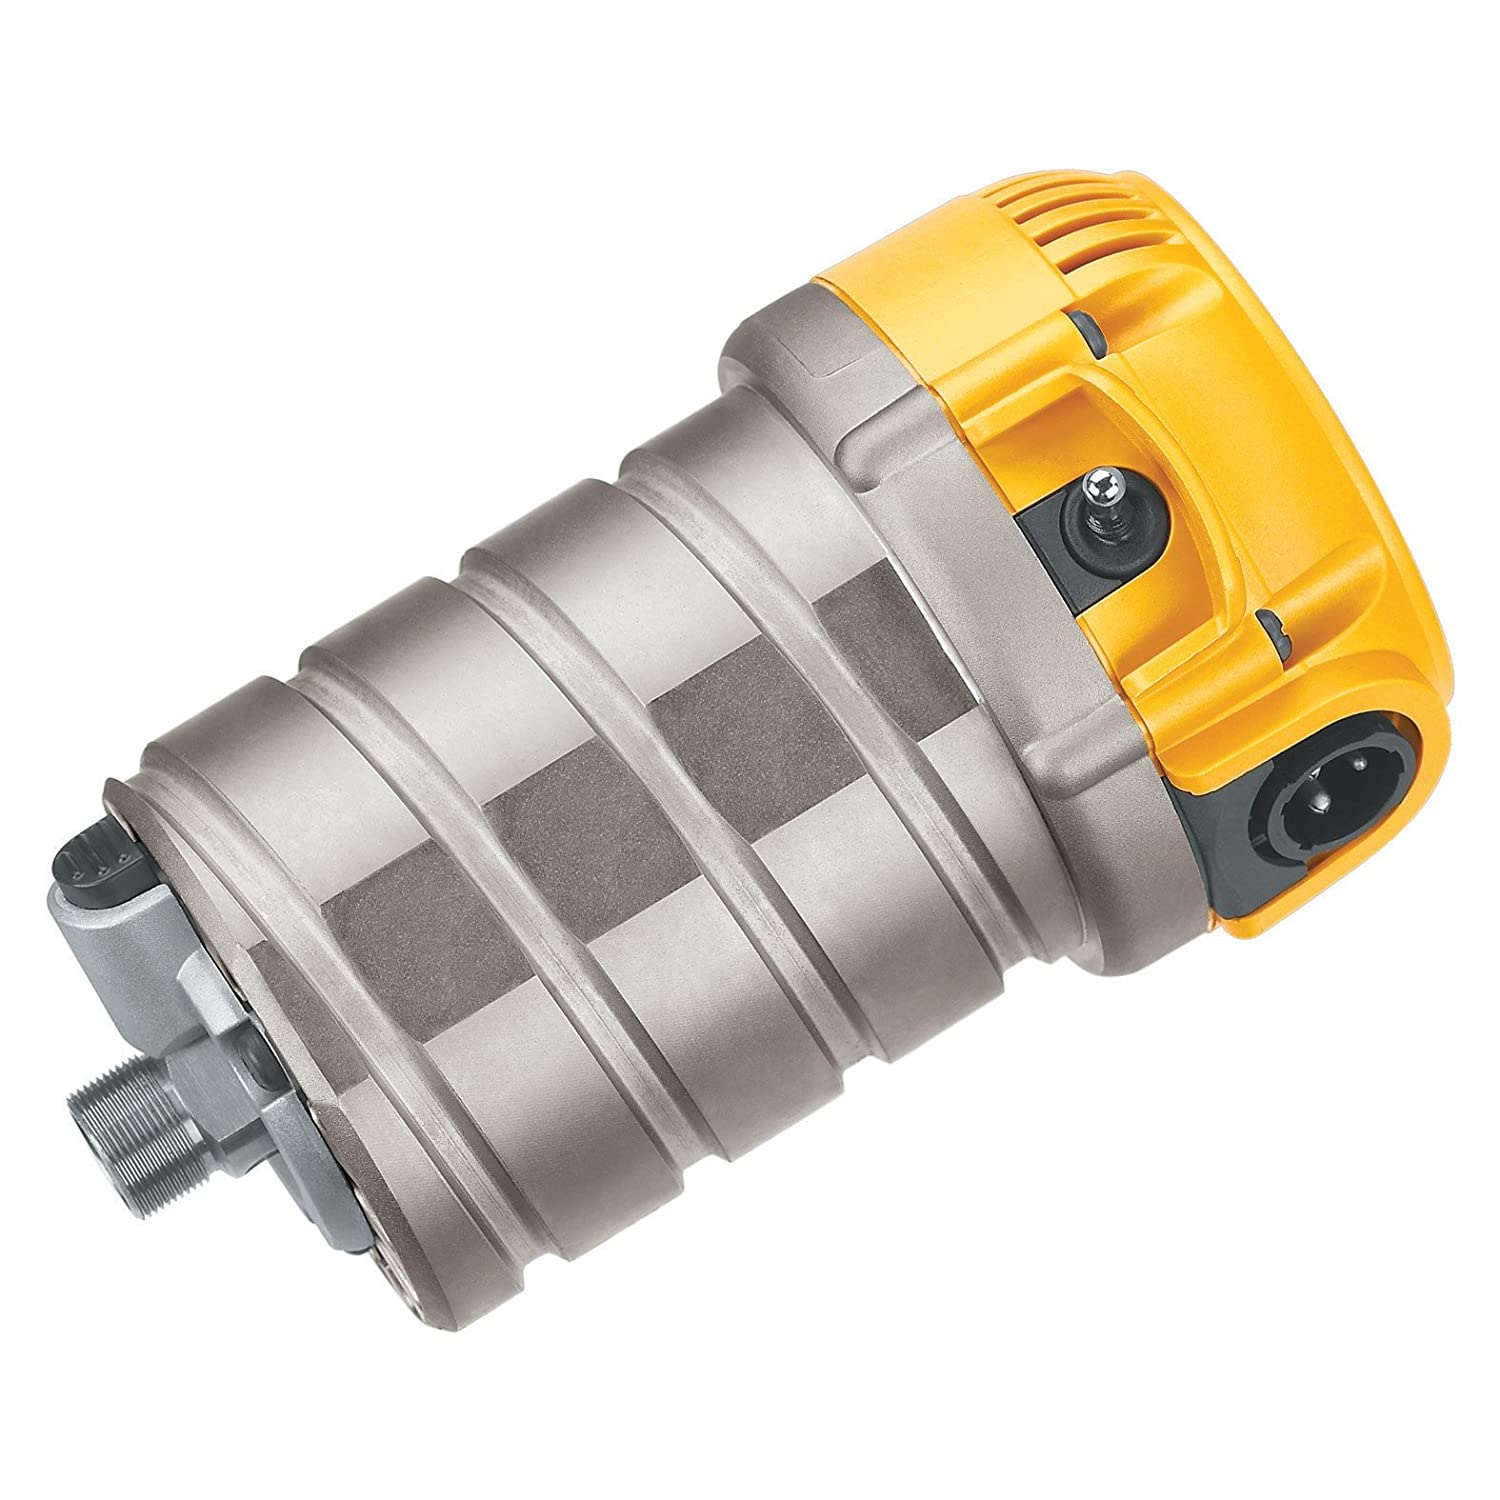 Dewalt DW618M 2-1/4, Maximum motor HP EVS Router Motor